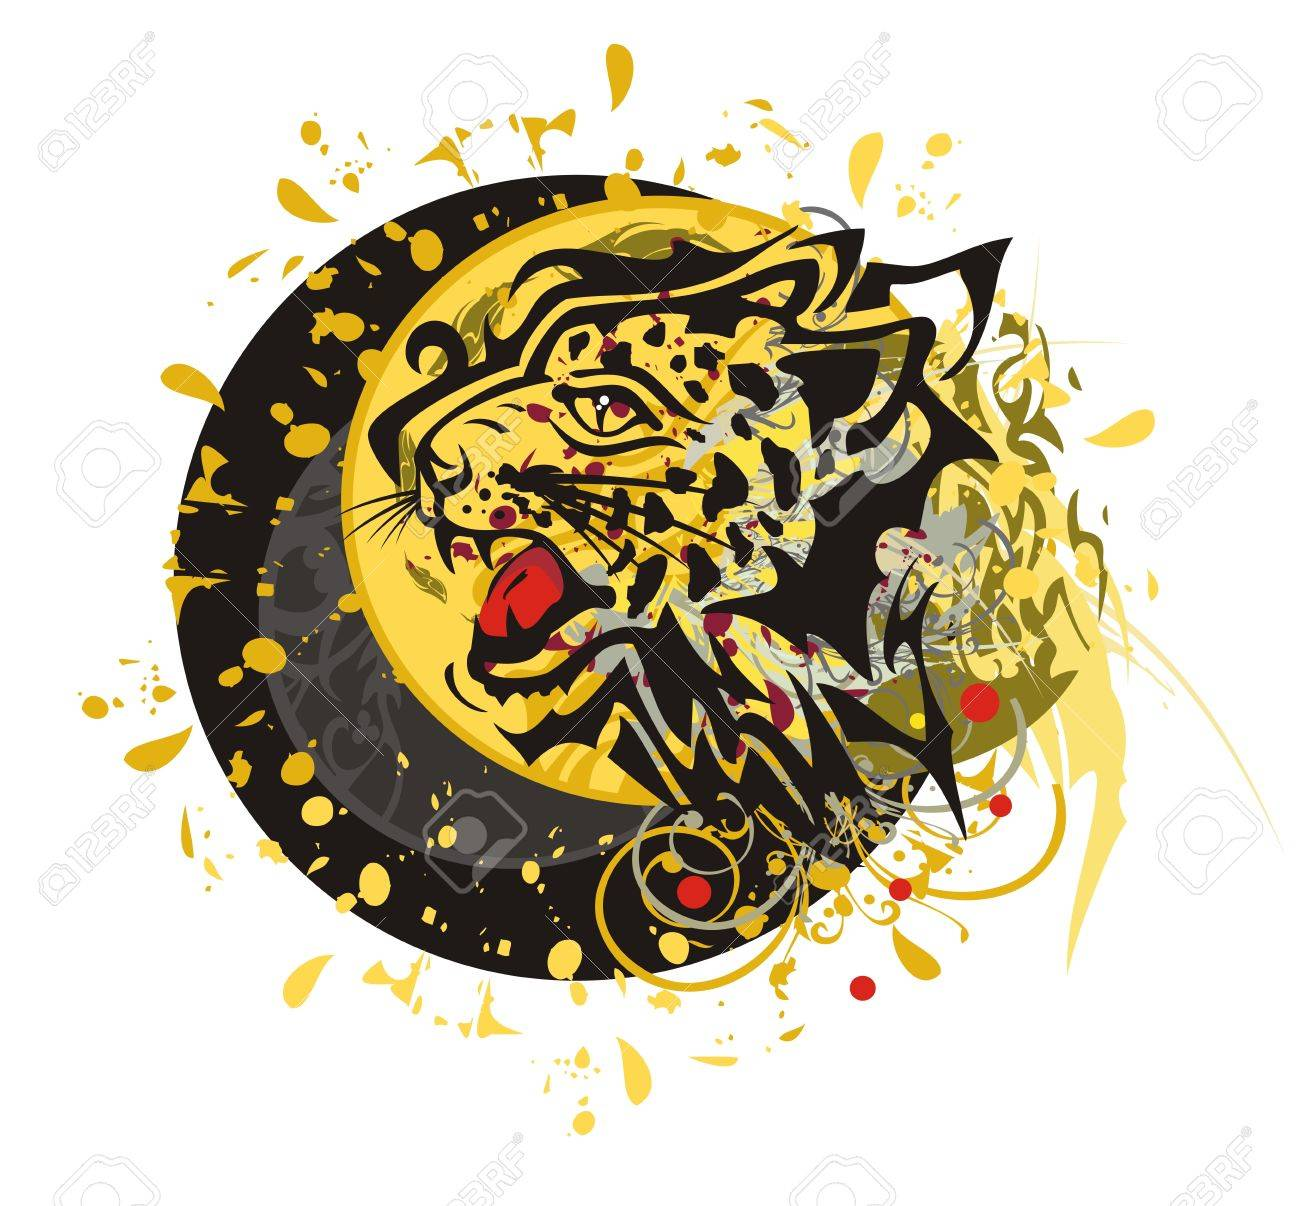 9e95dec7f Grunge tribal leopard circle. Tribal furious leopard head splashes with  blood drops against the decorative sun ready for a tattoo, graphics on the  vehicle, ...